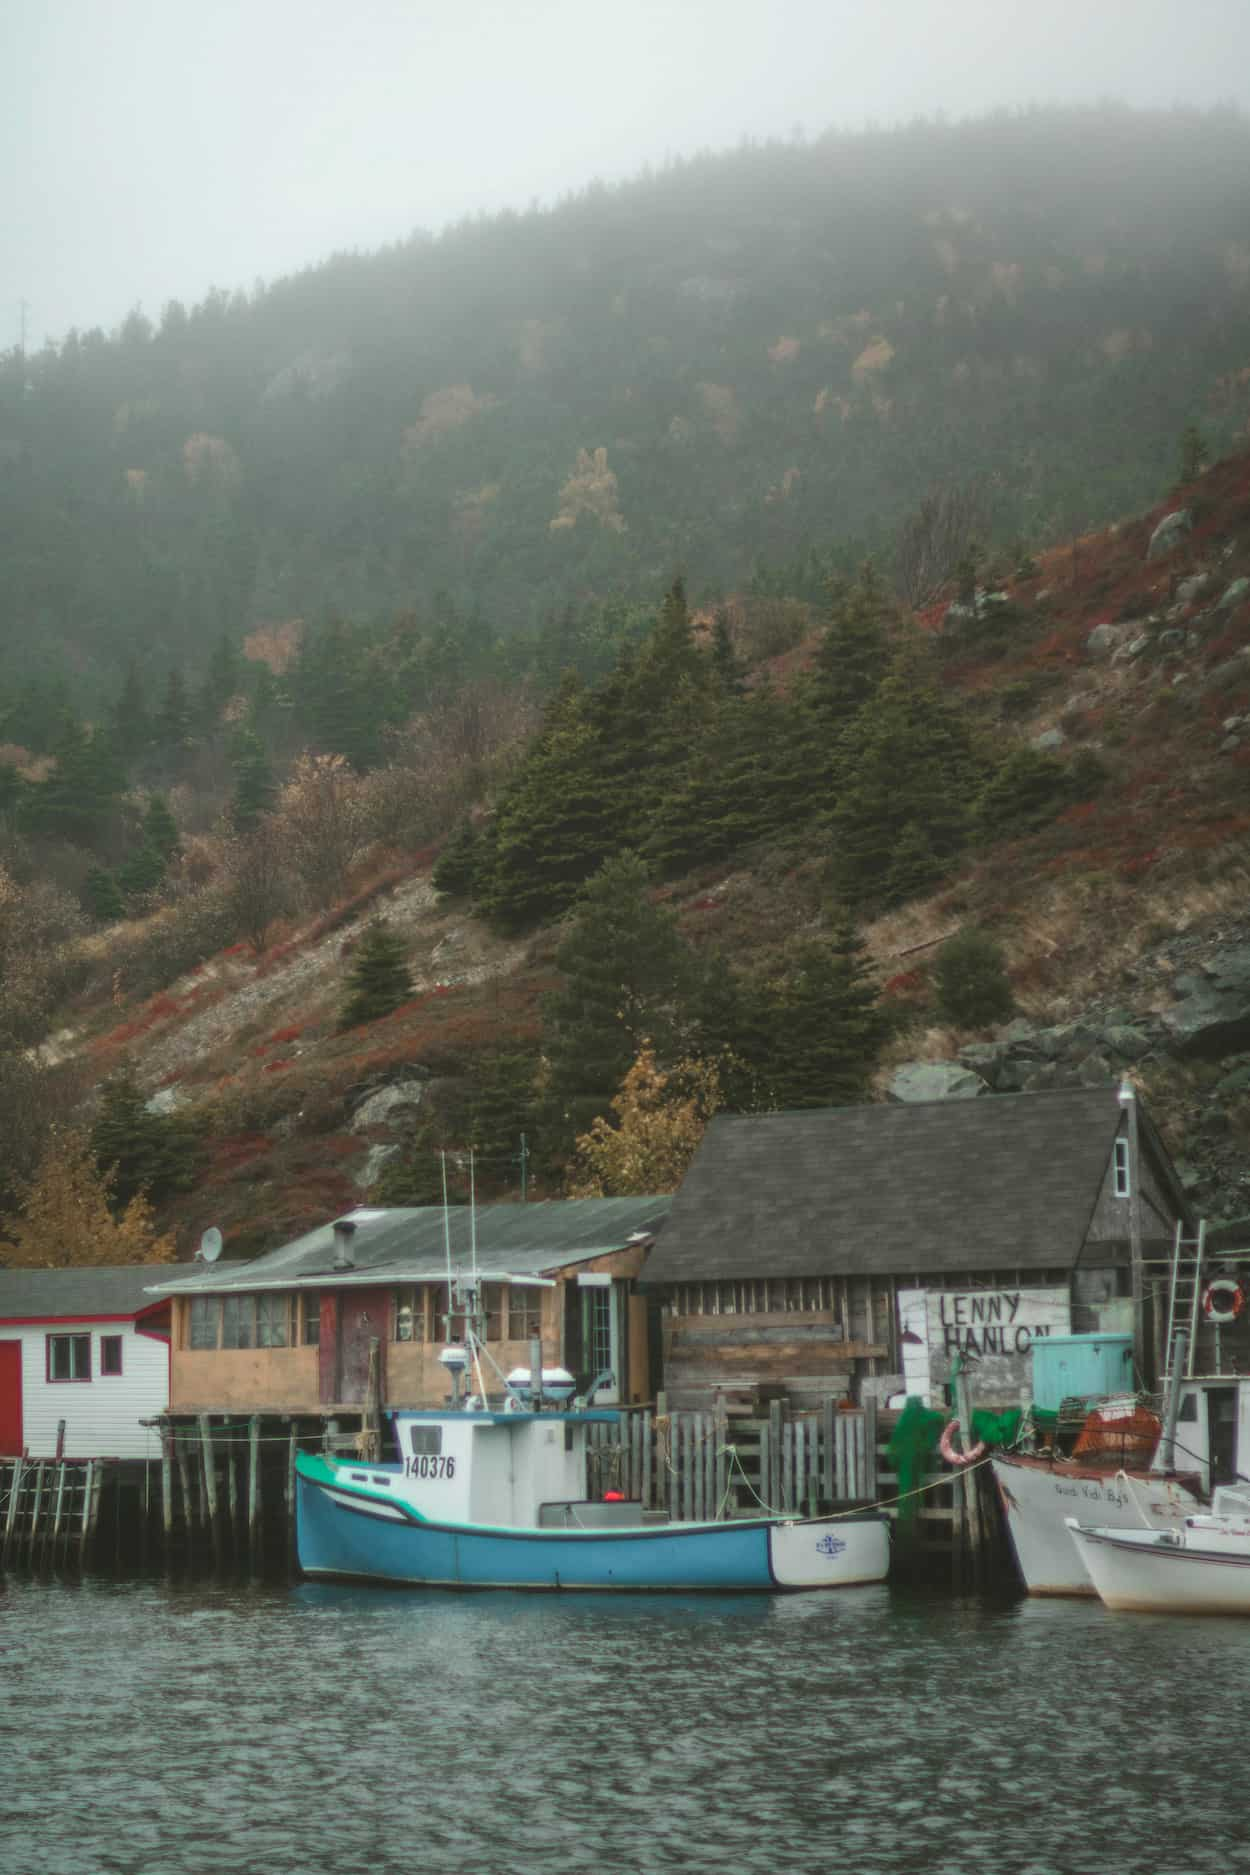 Quidi Vidi is one of the best stops to make during your 4 days in St. John's, Newfoundland